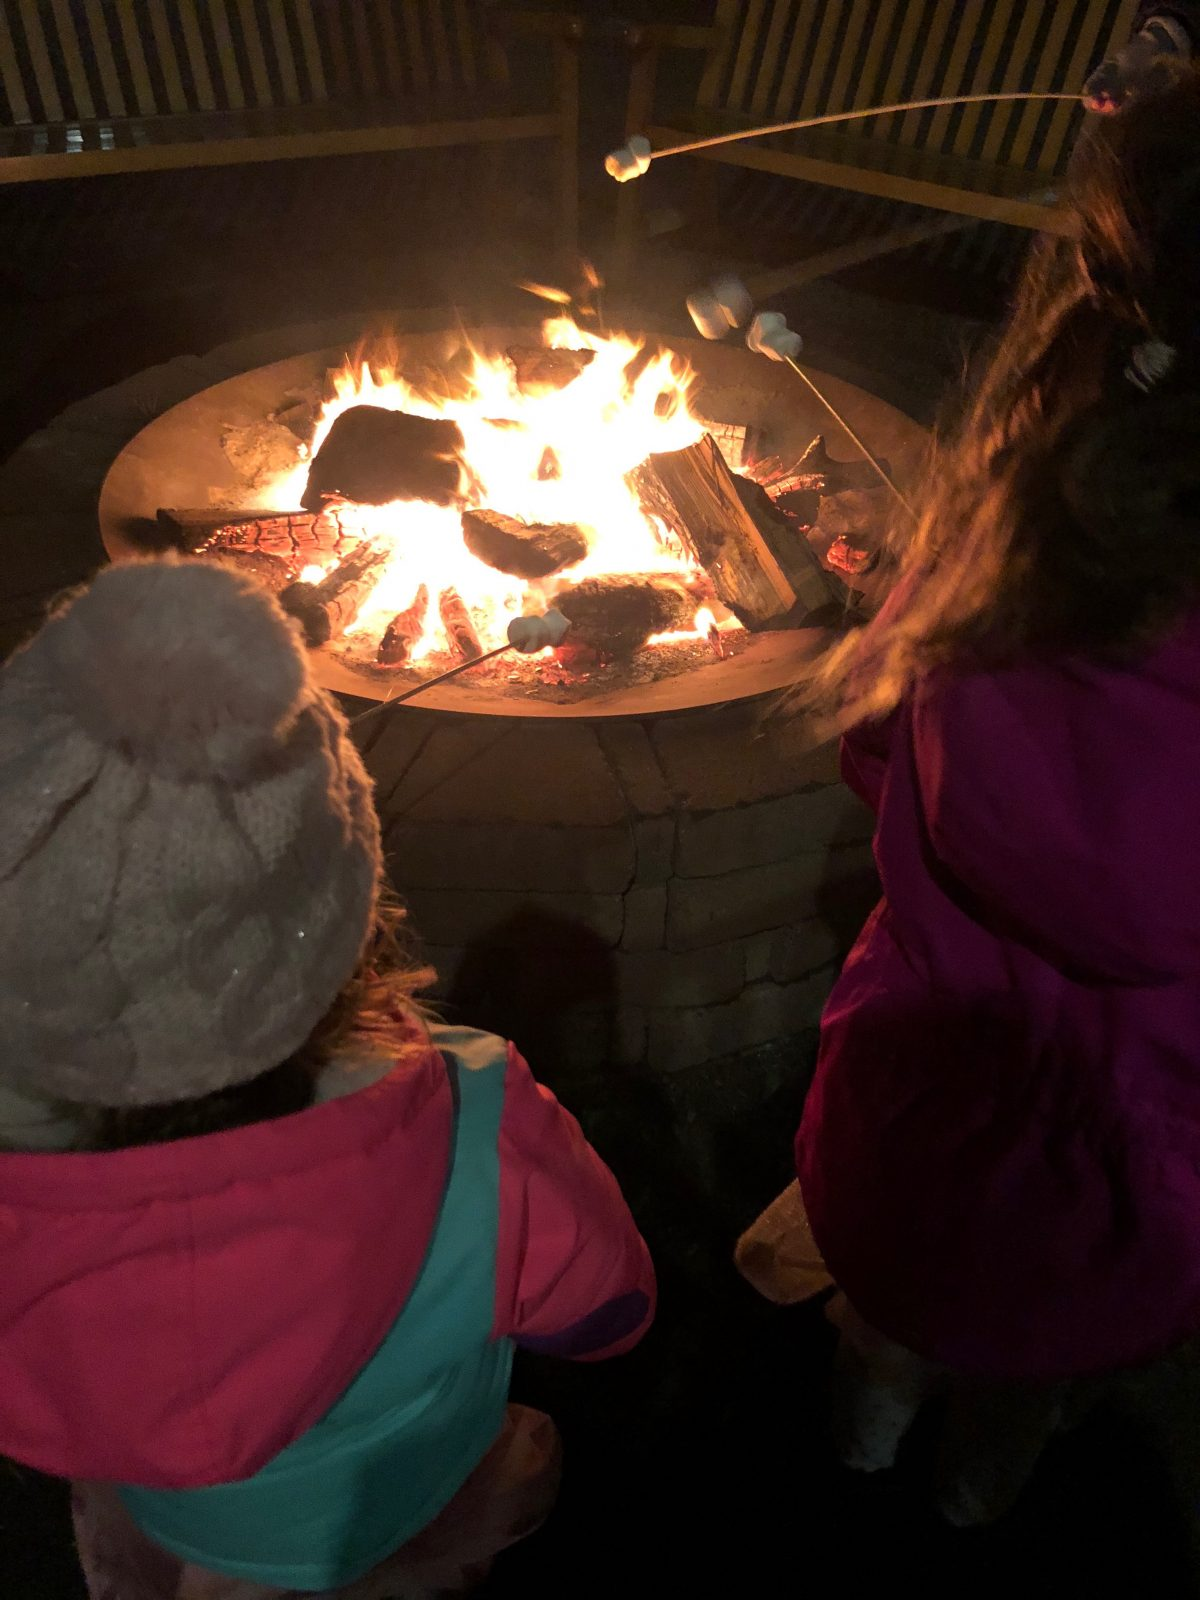 Making Smores at Woodloch Pines Resort in the Poconos Mountains